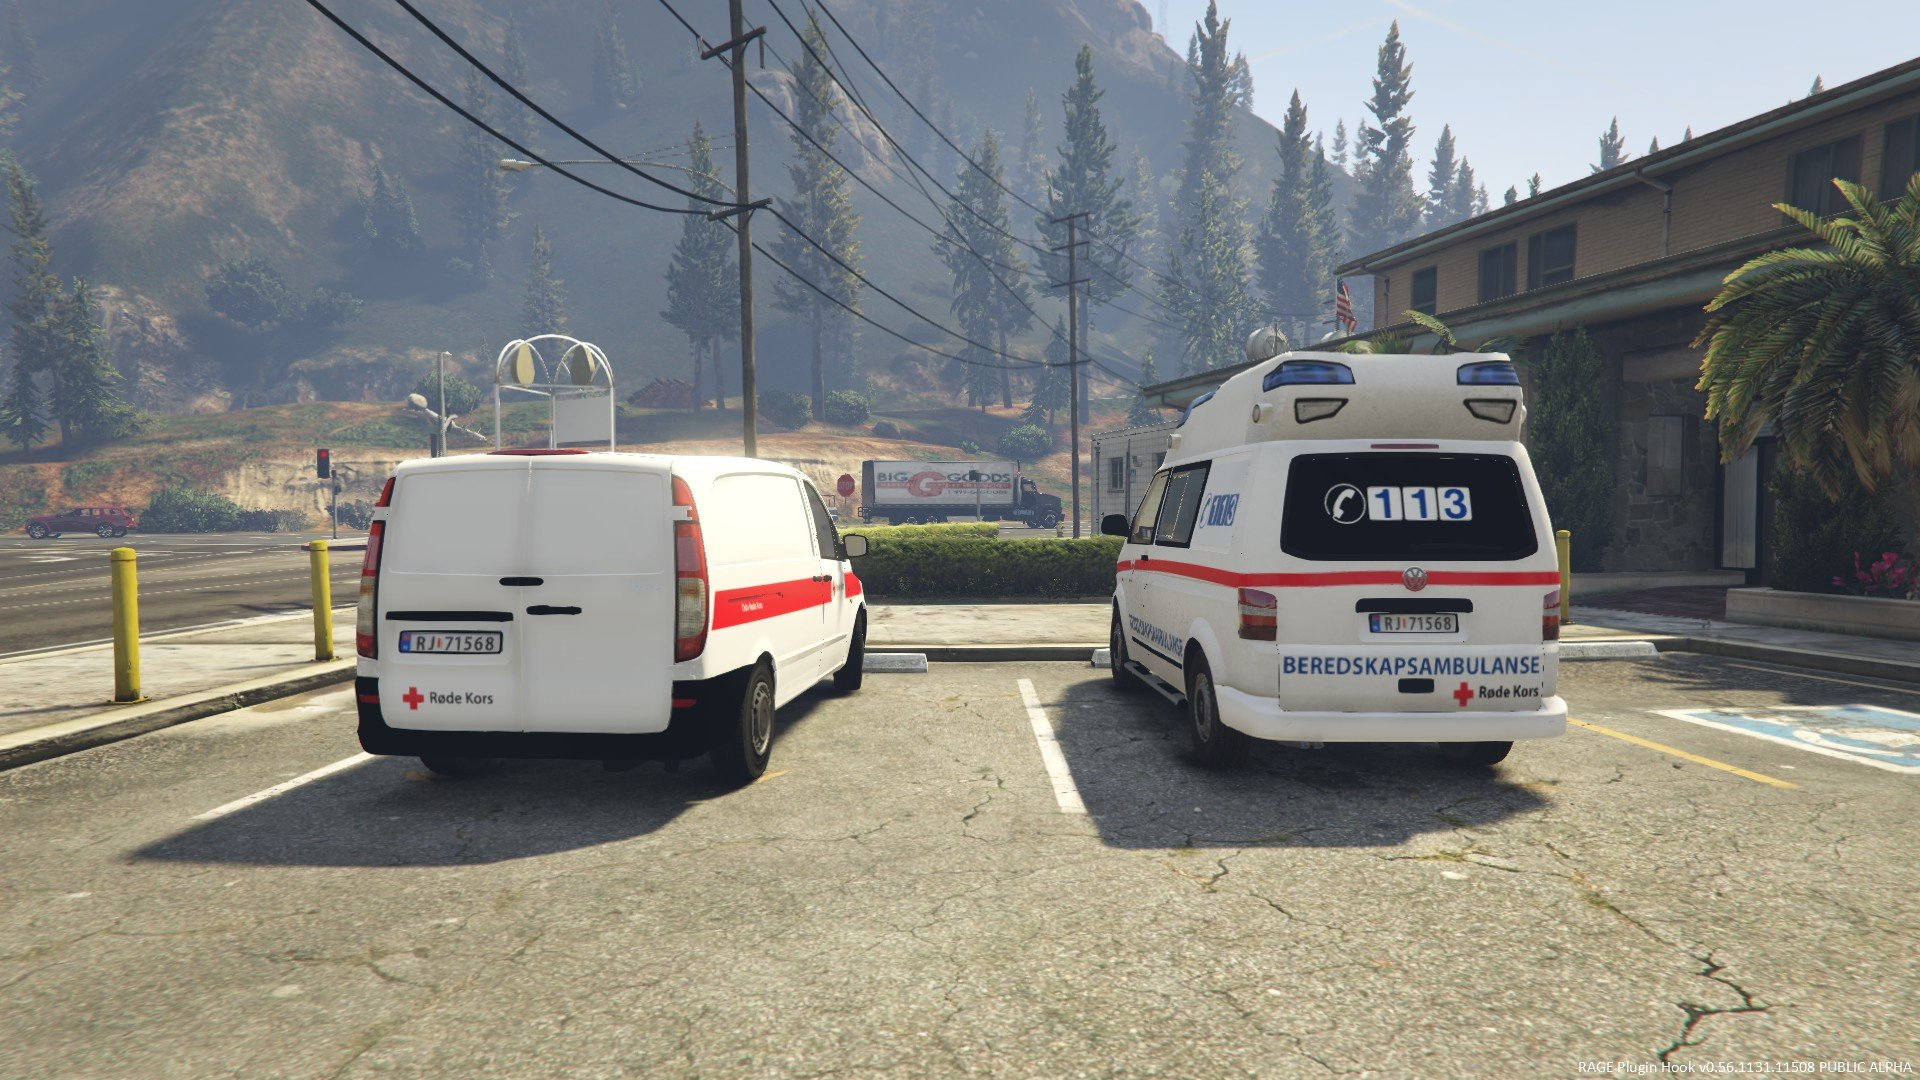 how to change car names in gta 5